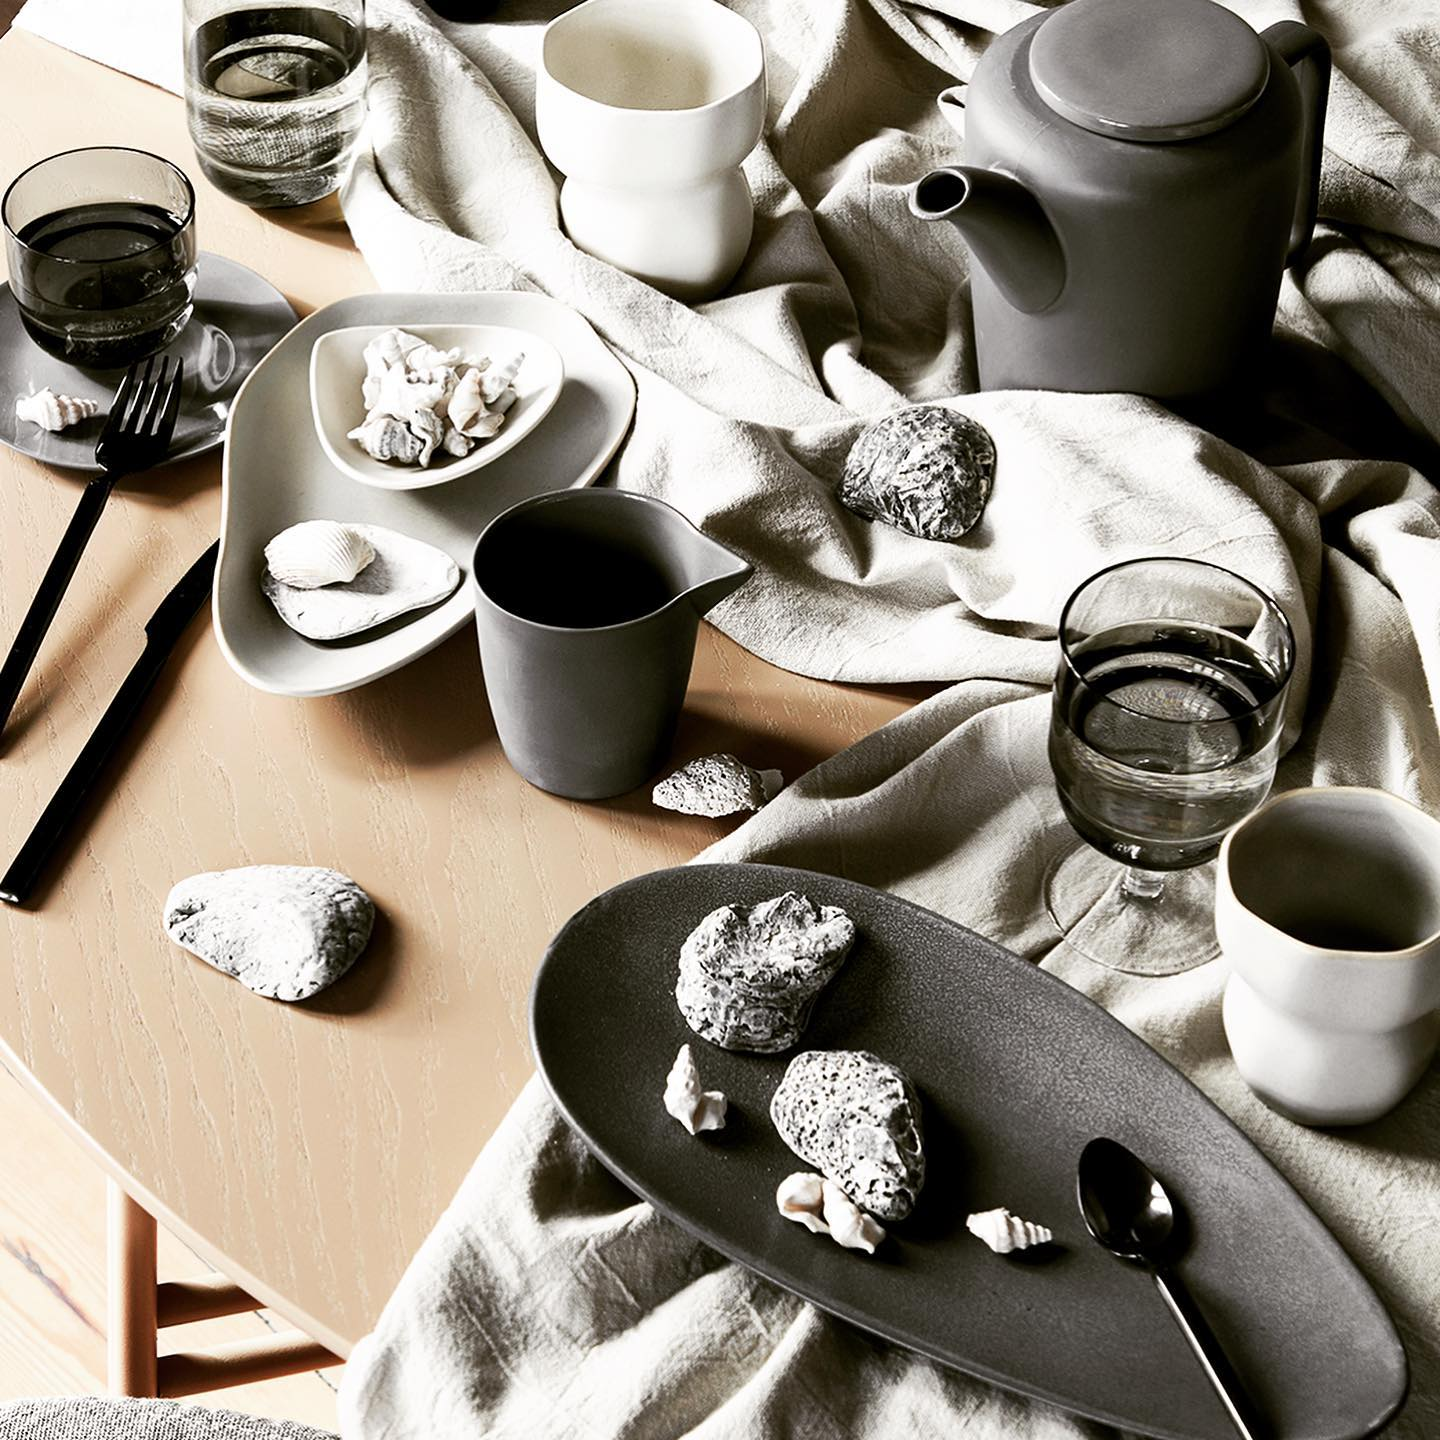 Introducing LIMFJORD.  A curvaceous coastline and captivating underworld of limestone unfolds around a unique inlet in the northern part of Denmark, called Limfjorden.  The Limfjord tableware is inspired by the seafloor. The organic shapes and soft tones of the plates, platters and mugs are inspired by the mussels, oysters and cockles from the grand and silent world underneath us.  Each delicate piece is finished with a reactive glaze that gives the ceramics its elegant, watercolour-like texture.  Available in the range: Mugs in 3 colours - beige, light grey and dark grey. A bowl in beige, a small plate in light grey and large plate in dark grey. . . #tableware #serveware #dinnerware